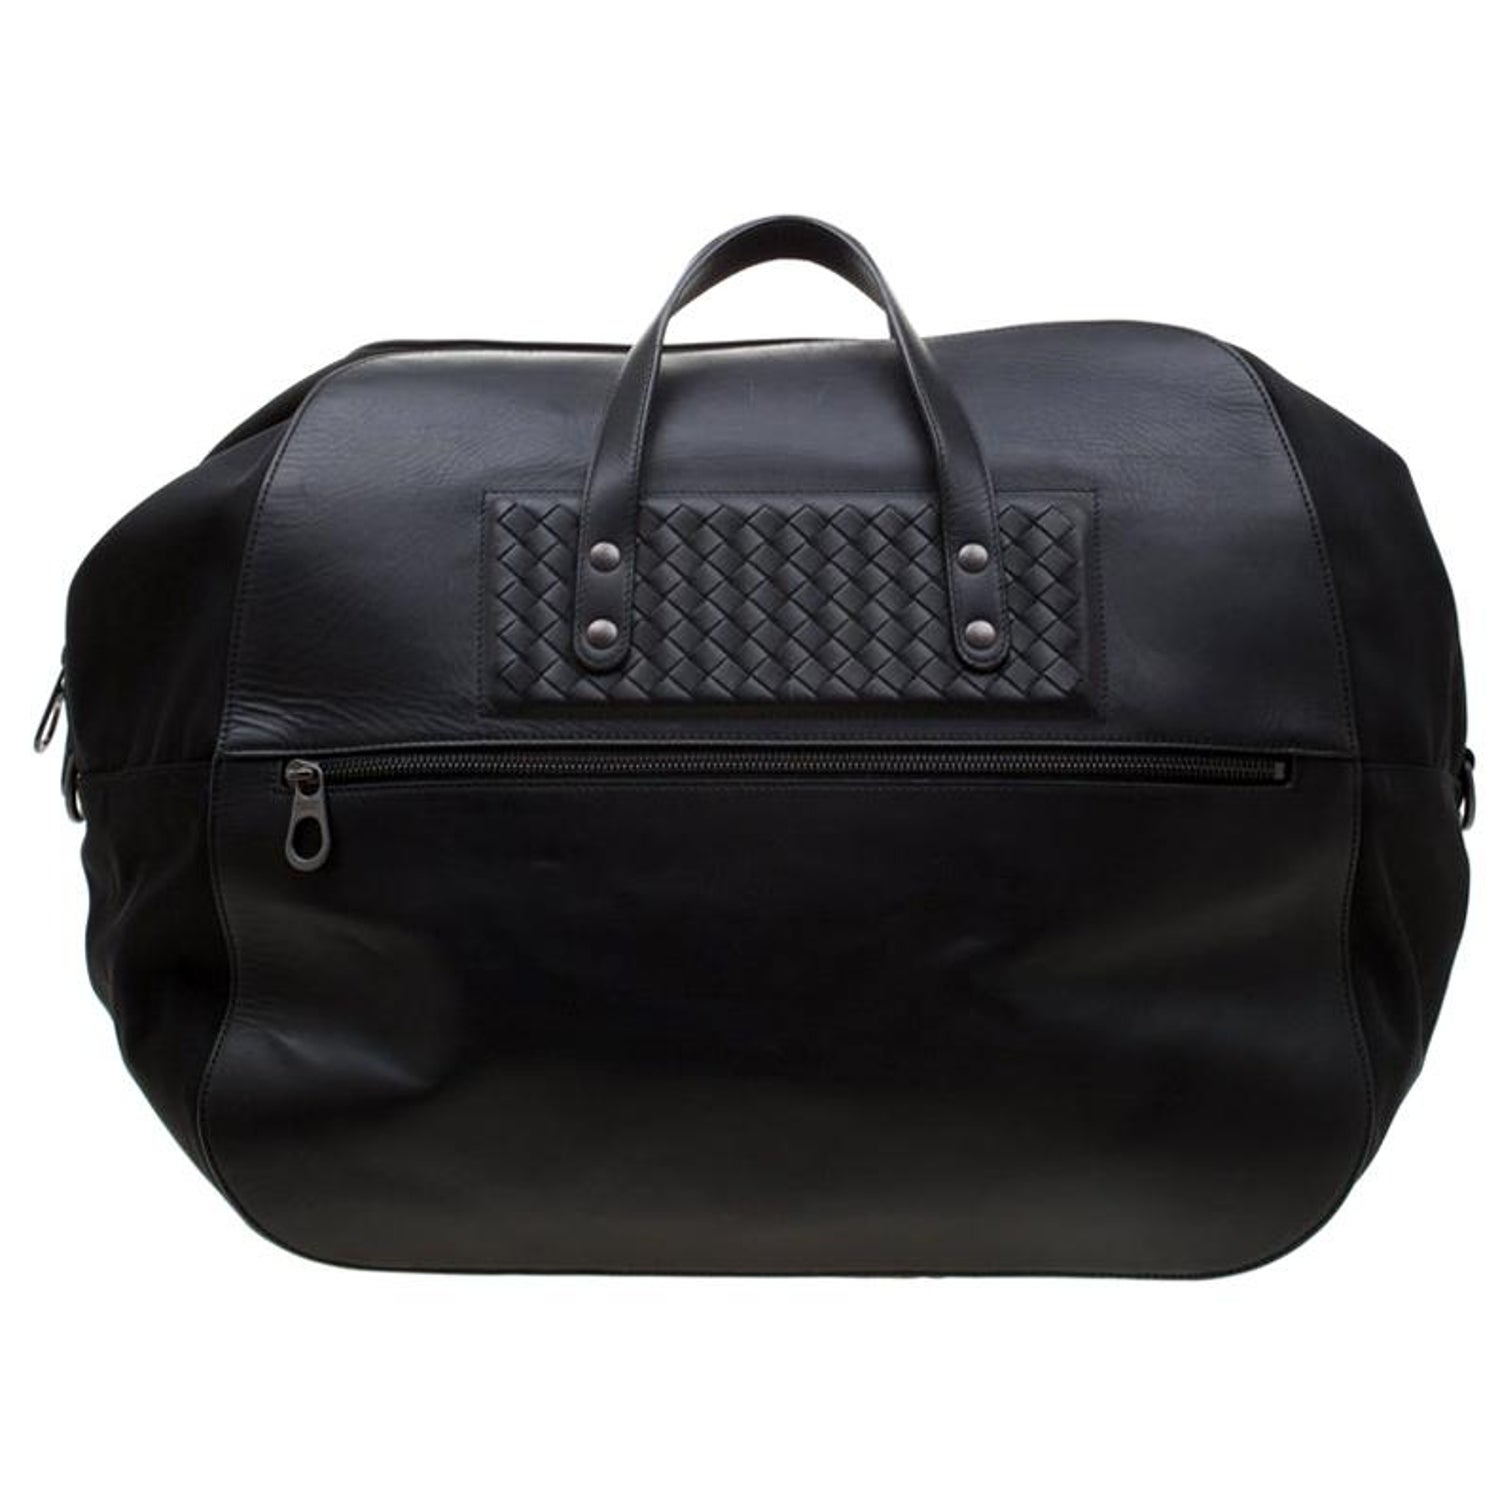 7de445eee39a Bottega Veneta Black Nylon and Leather Duffle Bag